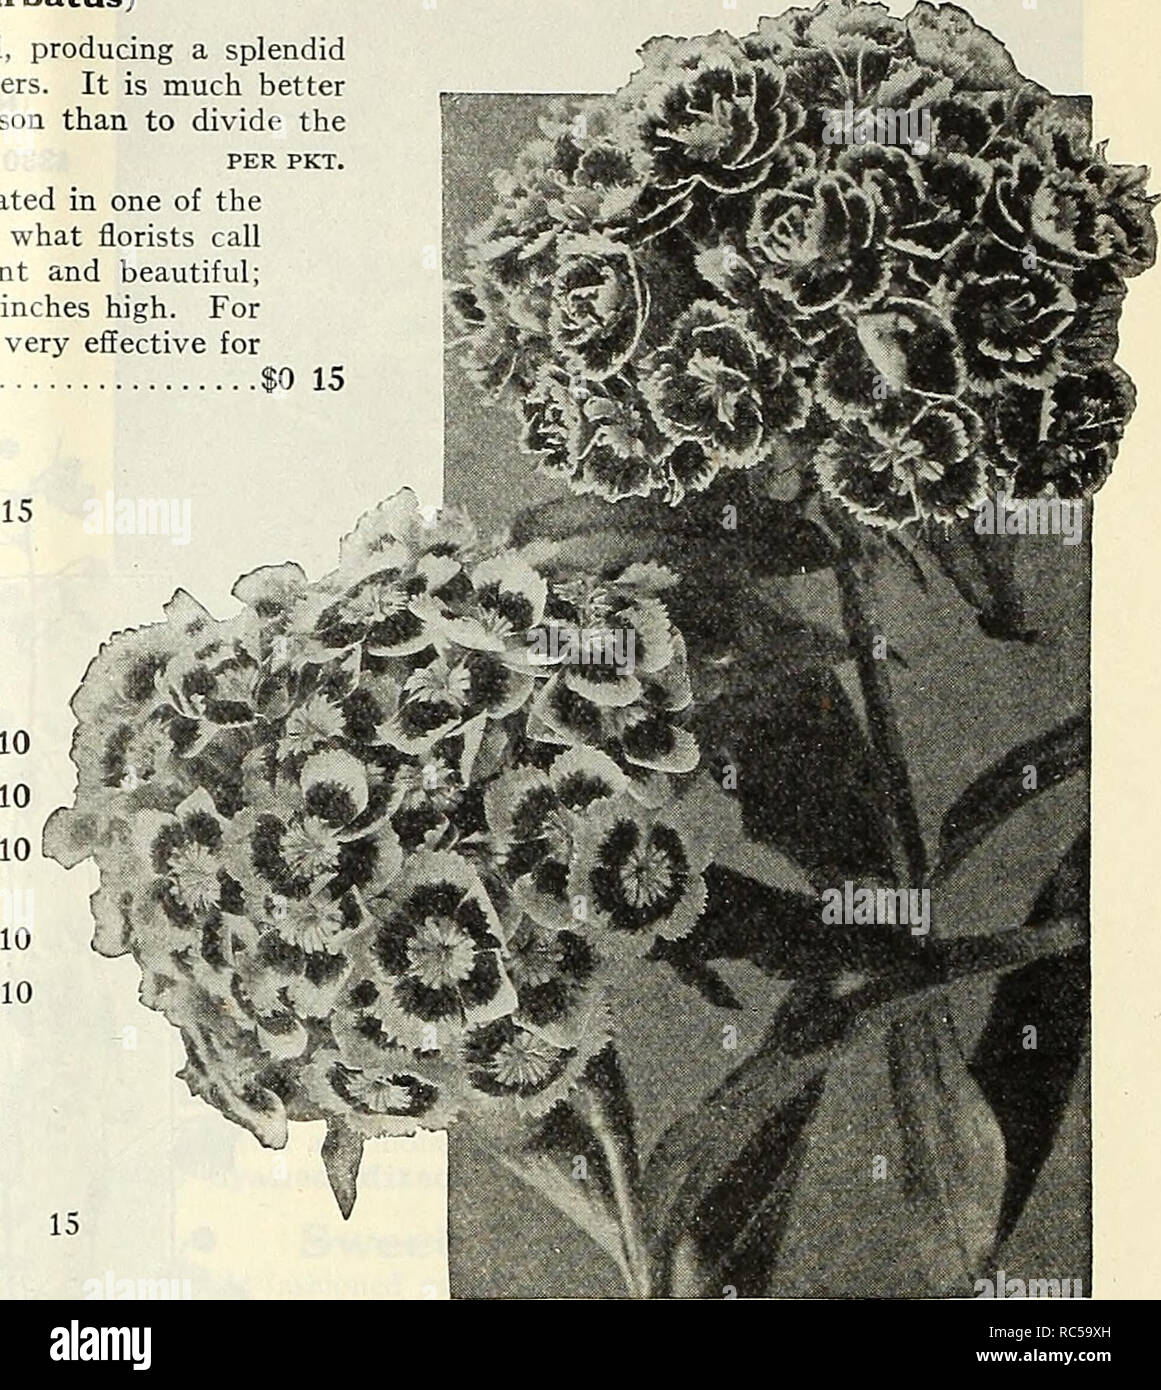 . Dreer's mid-summer catalogue 1930. Flowers Seeds Catalogs; Fruit Seeds Catalogs; Vegetables Seeds Catalogs; Nurseries (Horticulture) Catalogs; Gardening Equipment and supplies Catalogs. 22 DREER'S FLOWER SEEDS FOR SUMMER SOWING Sweet William (Dianthus Barbatus) A well-known, attractive, free-flowering hardy perennial, producing a splendid effect in beds and borders with their rich and varied flowers. It is much better to raise new, vigorous, young plants from seed every season than to divide the old plants. per pkt. 4282 Newport Pink. A distinct new color which originated in one of the far-f - Stock Image